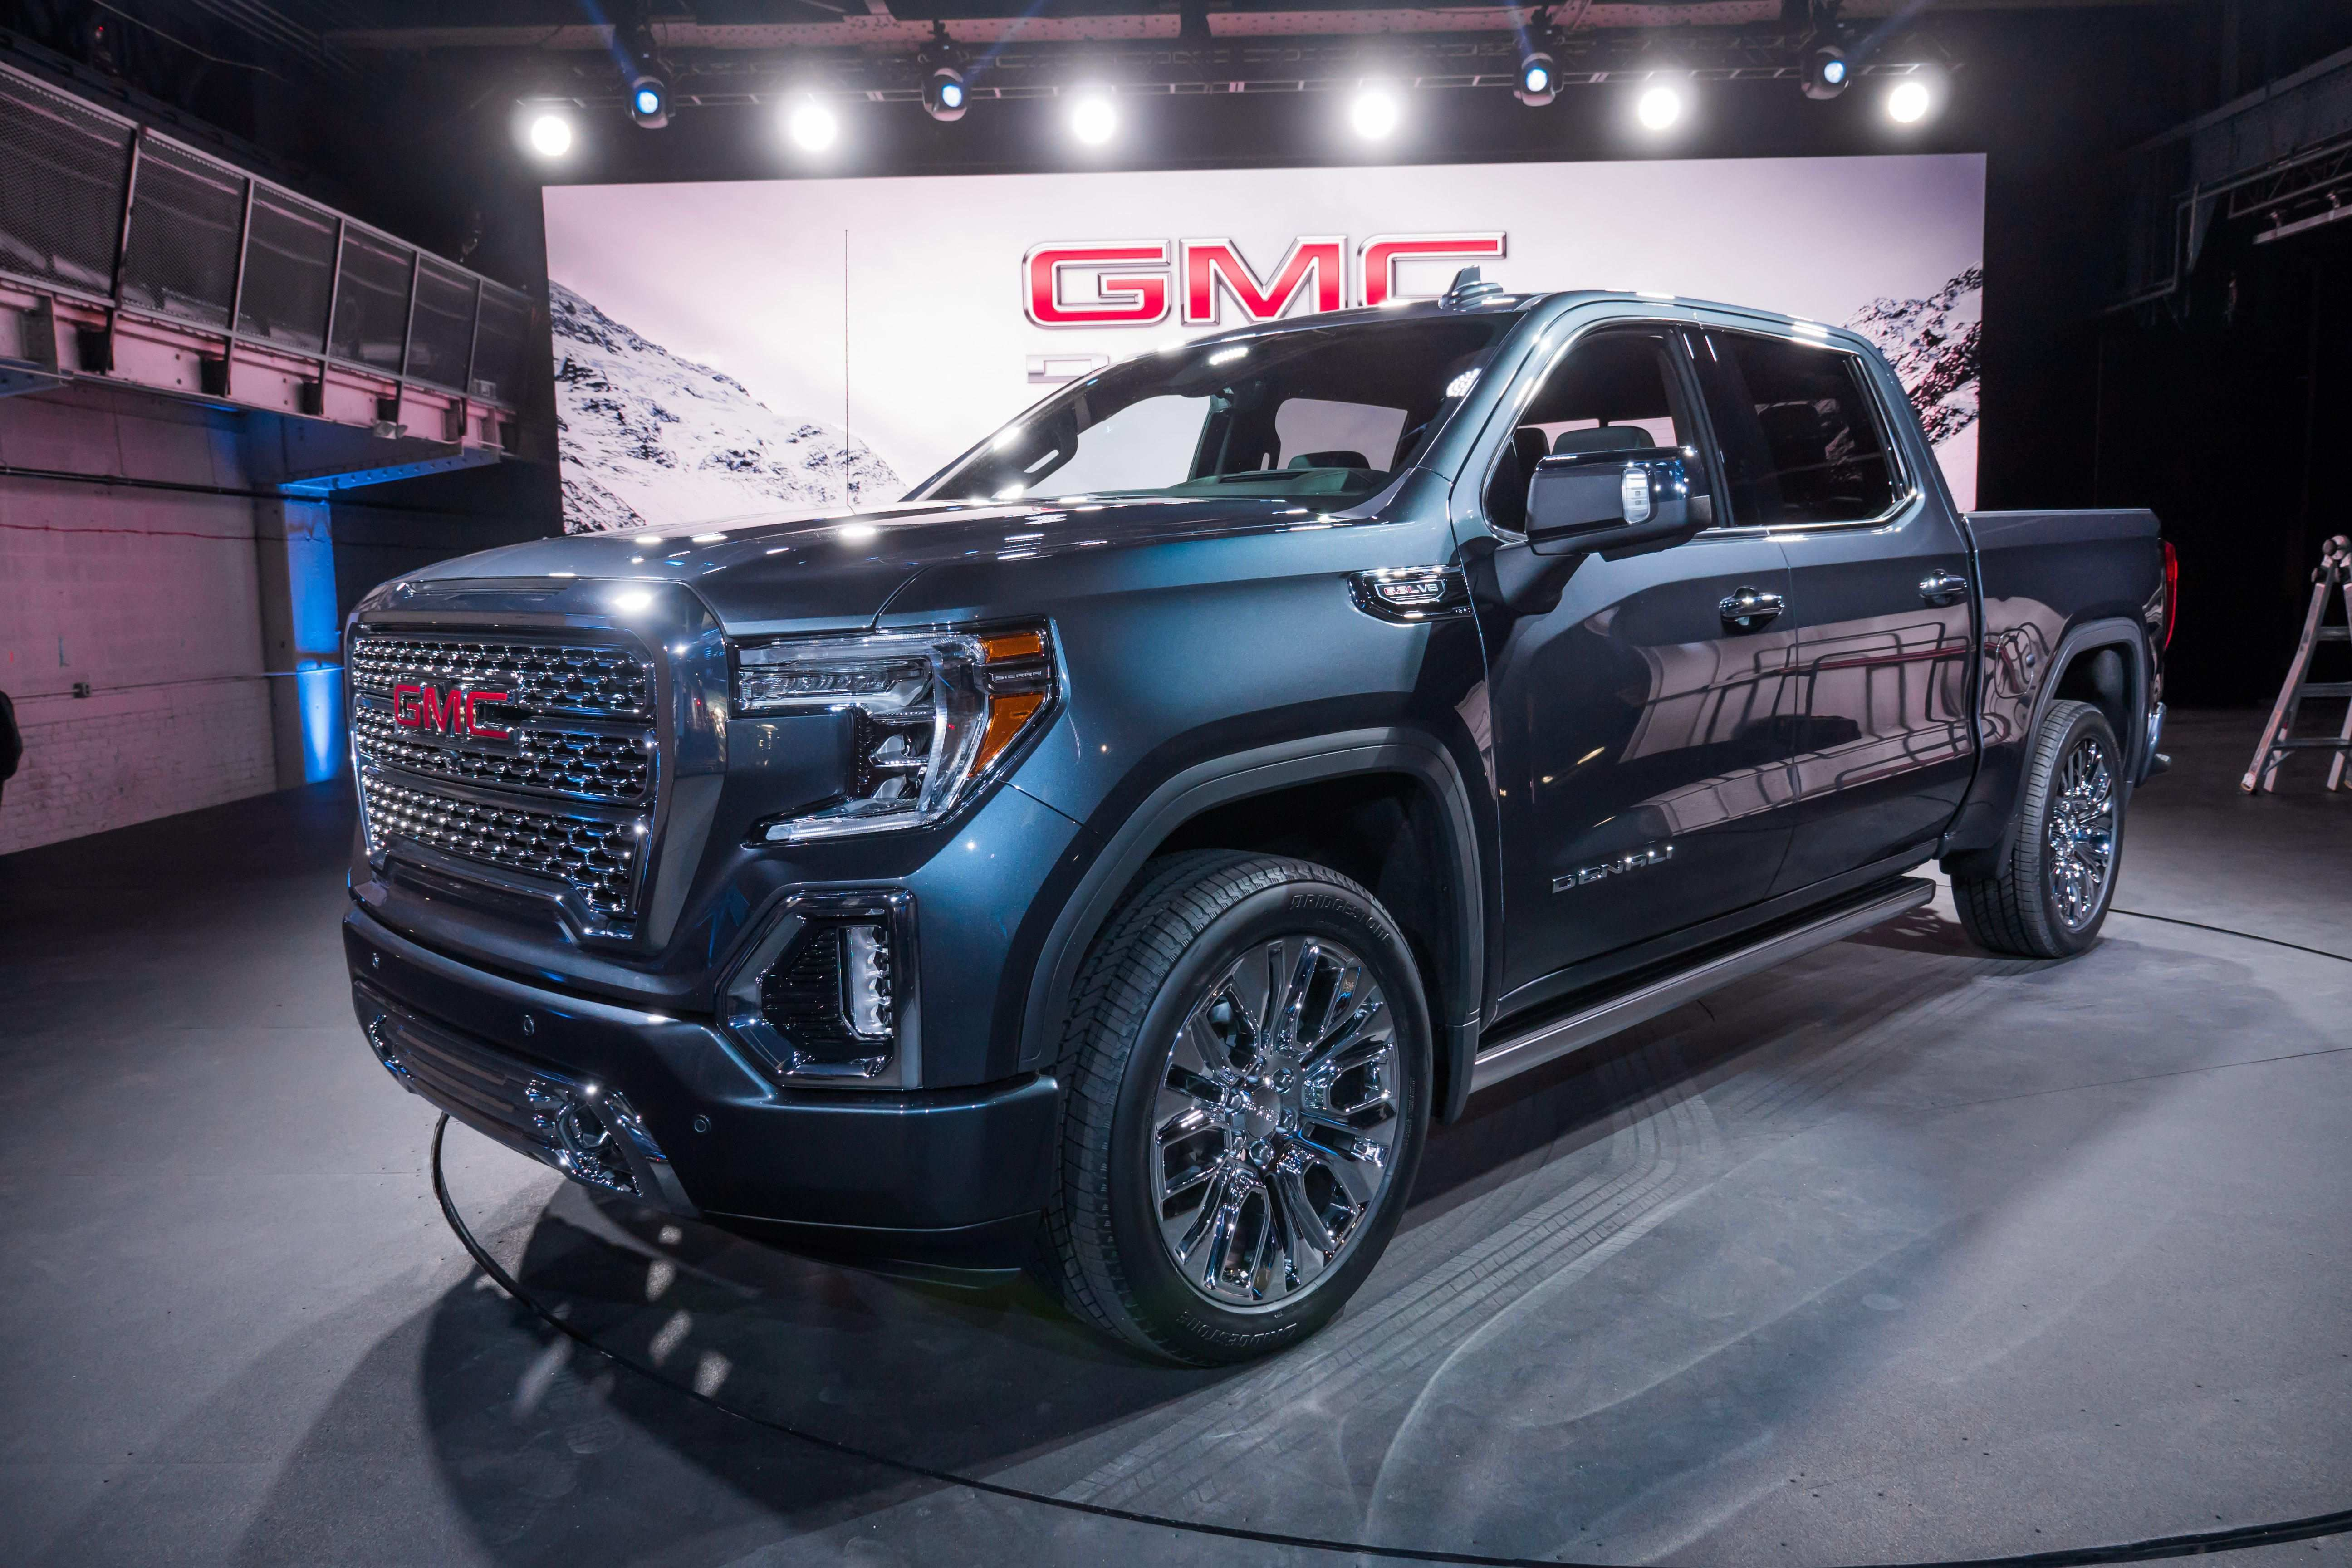 54 Best Review Best Gmc Denali 2019 Interior Exterior And Review Prices by Best Gmc Denali 2019 Interior Exterior And Review